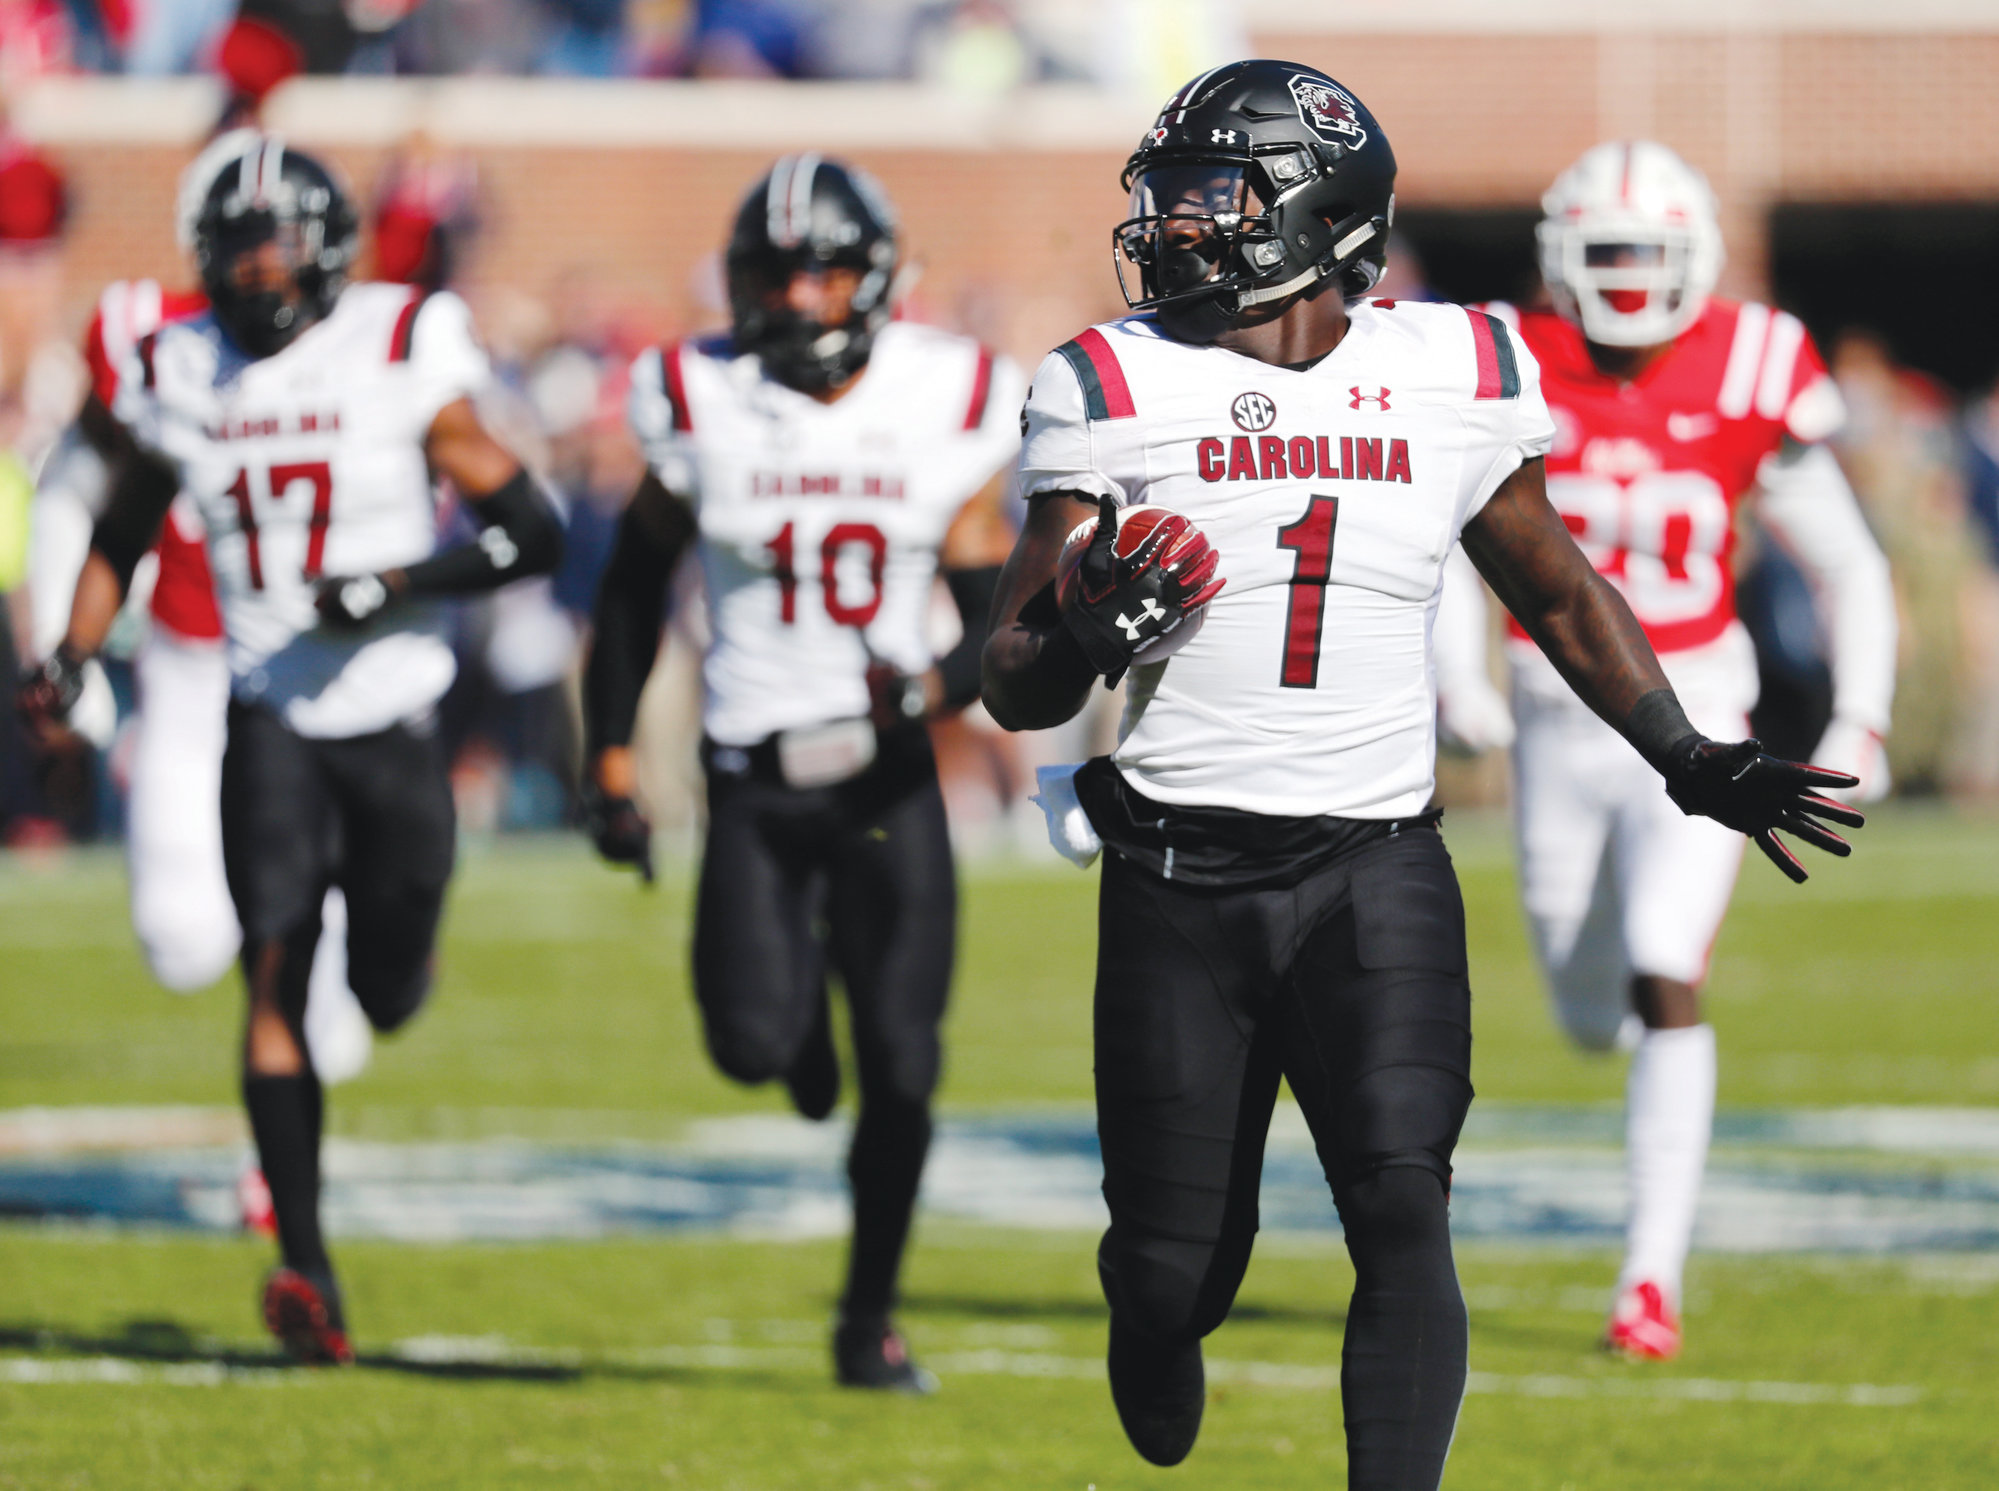 South Carolina's Deebo Samuel (1) looks around to make sure no Mississippi defender is near on his way to a 90-yard return for a touchdown nf the opening kickoff during the Gamecocks' 48-44 victory on Saturday in Oxford, Mississippi.